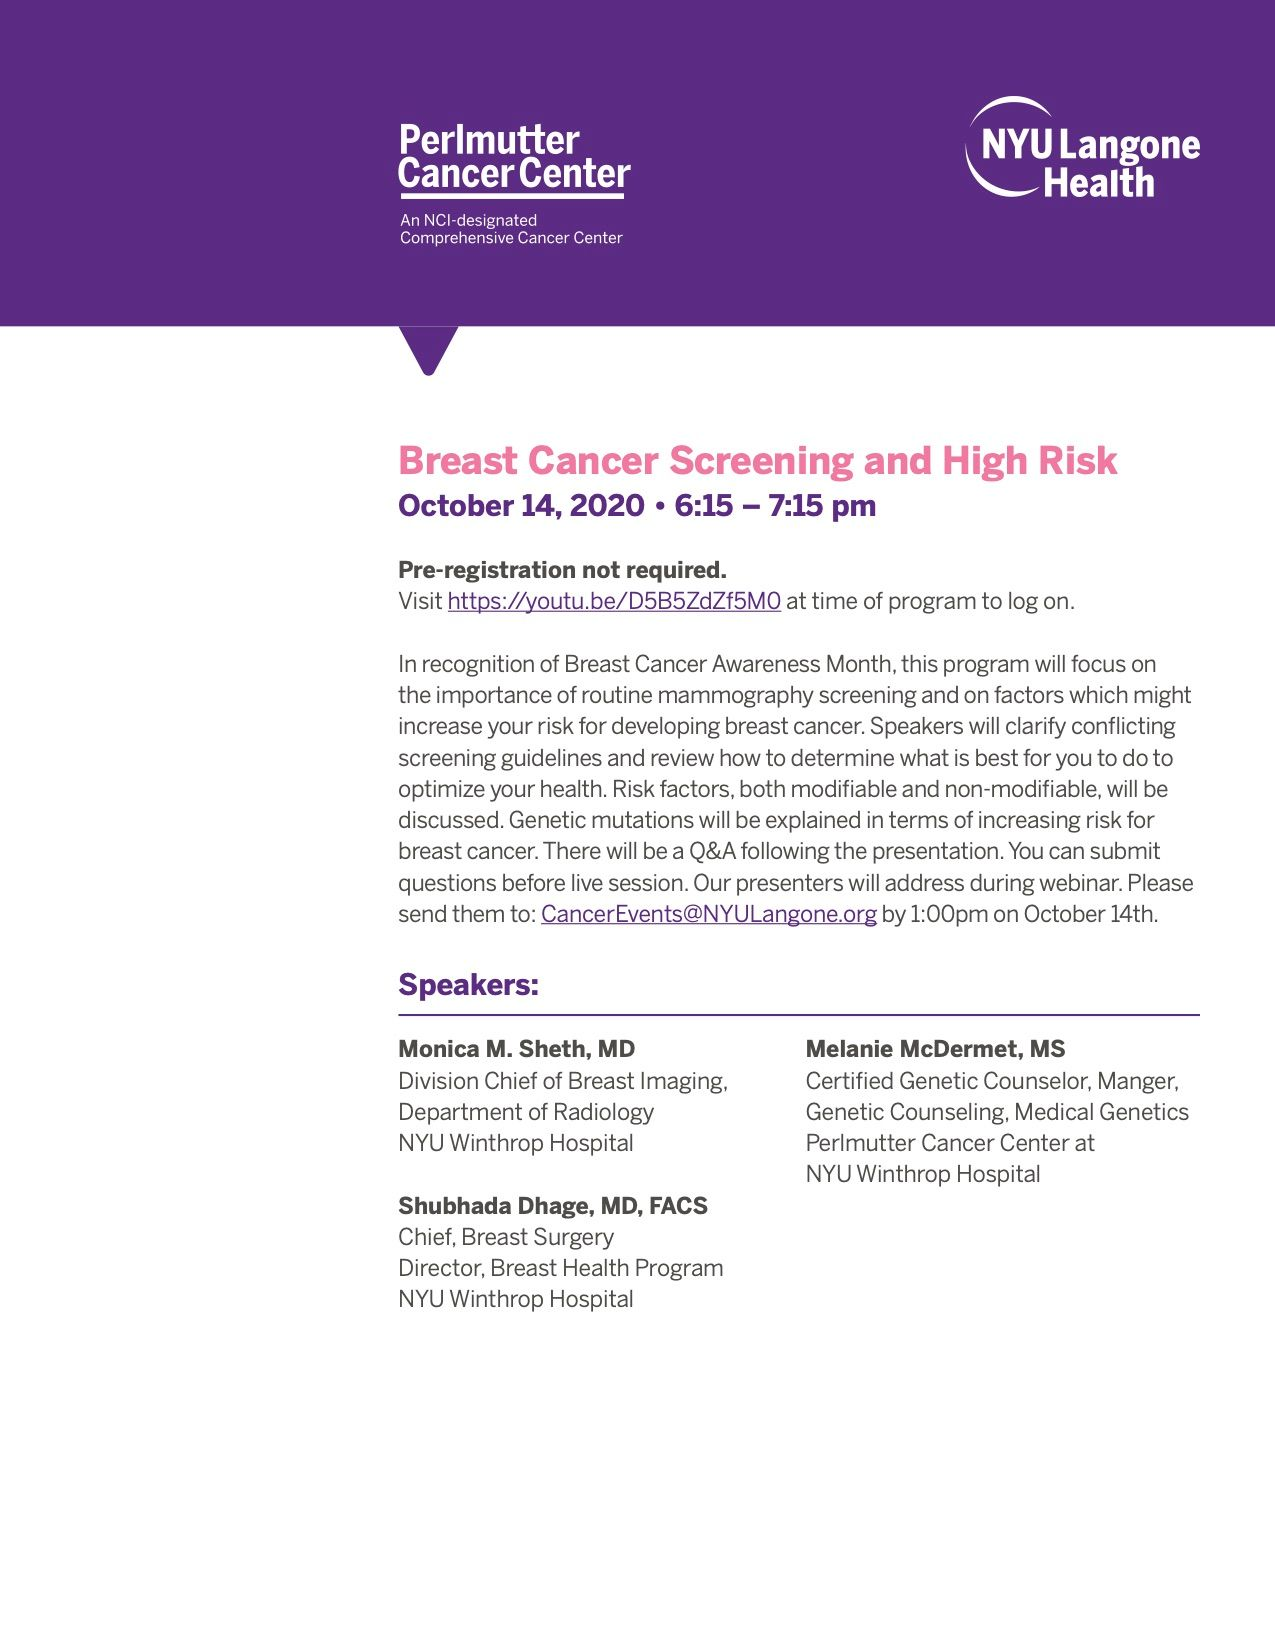 Breast Cancer Screening and High Risk Educational  program